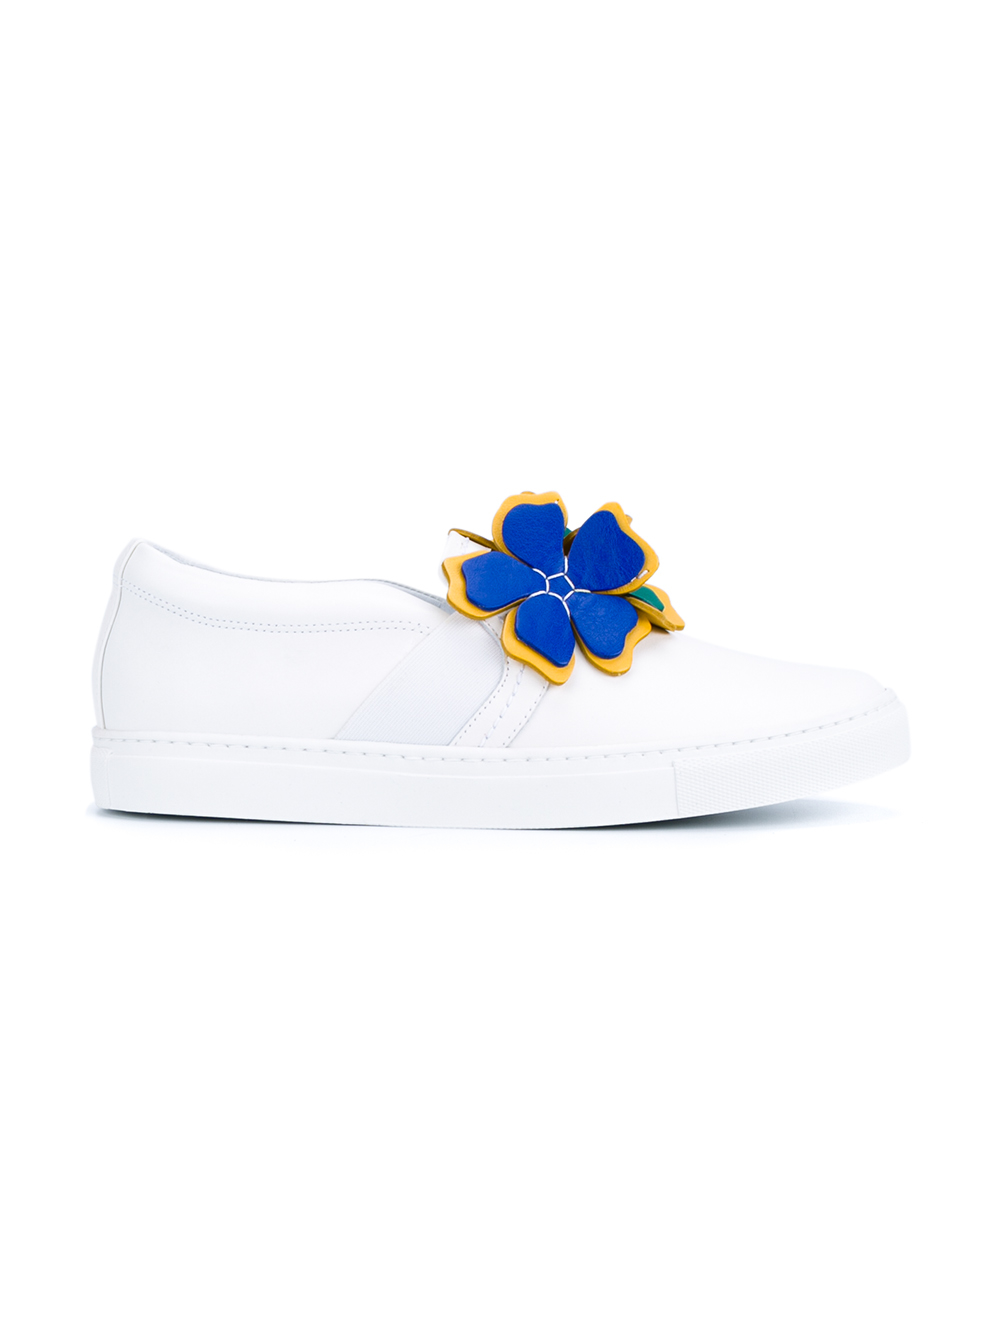 Lanvin Floral Leather Slip-on Sneakers in White